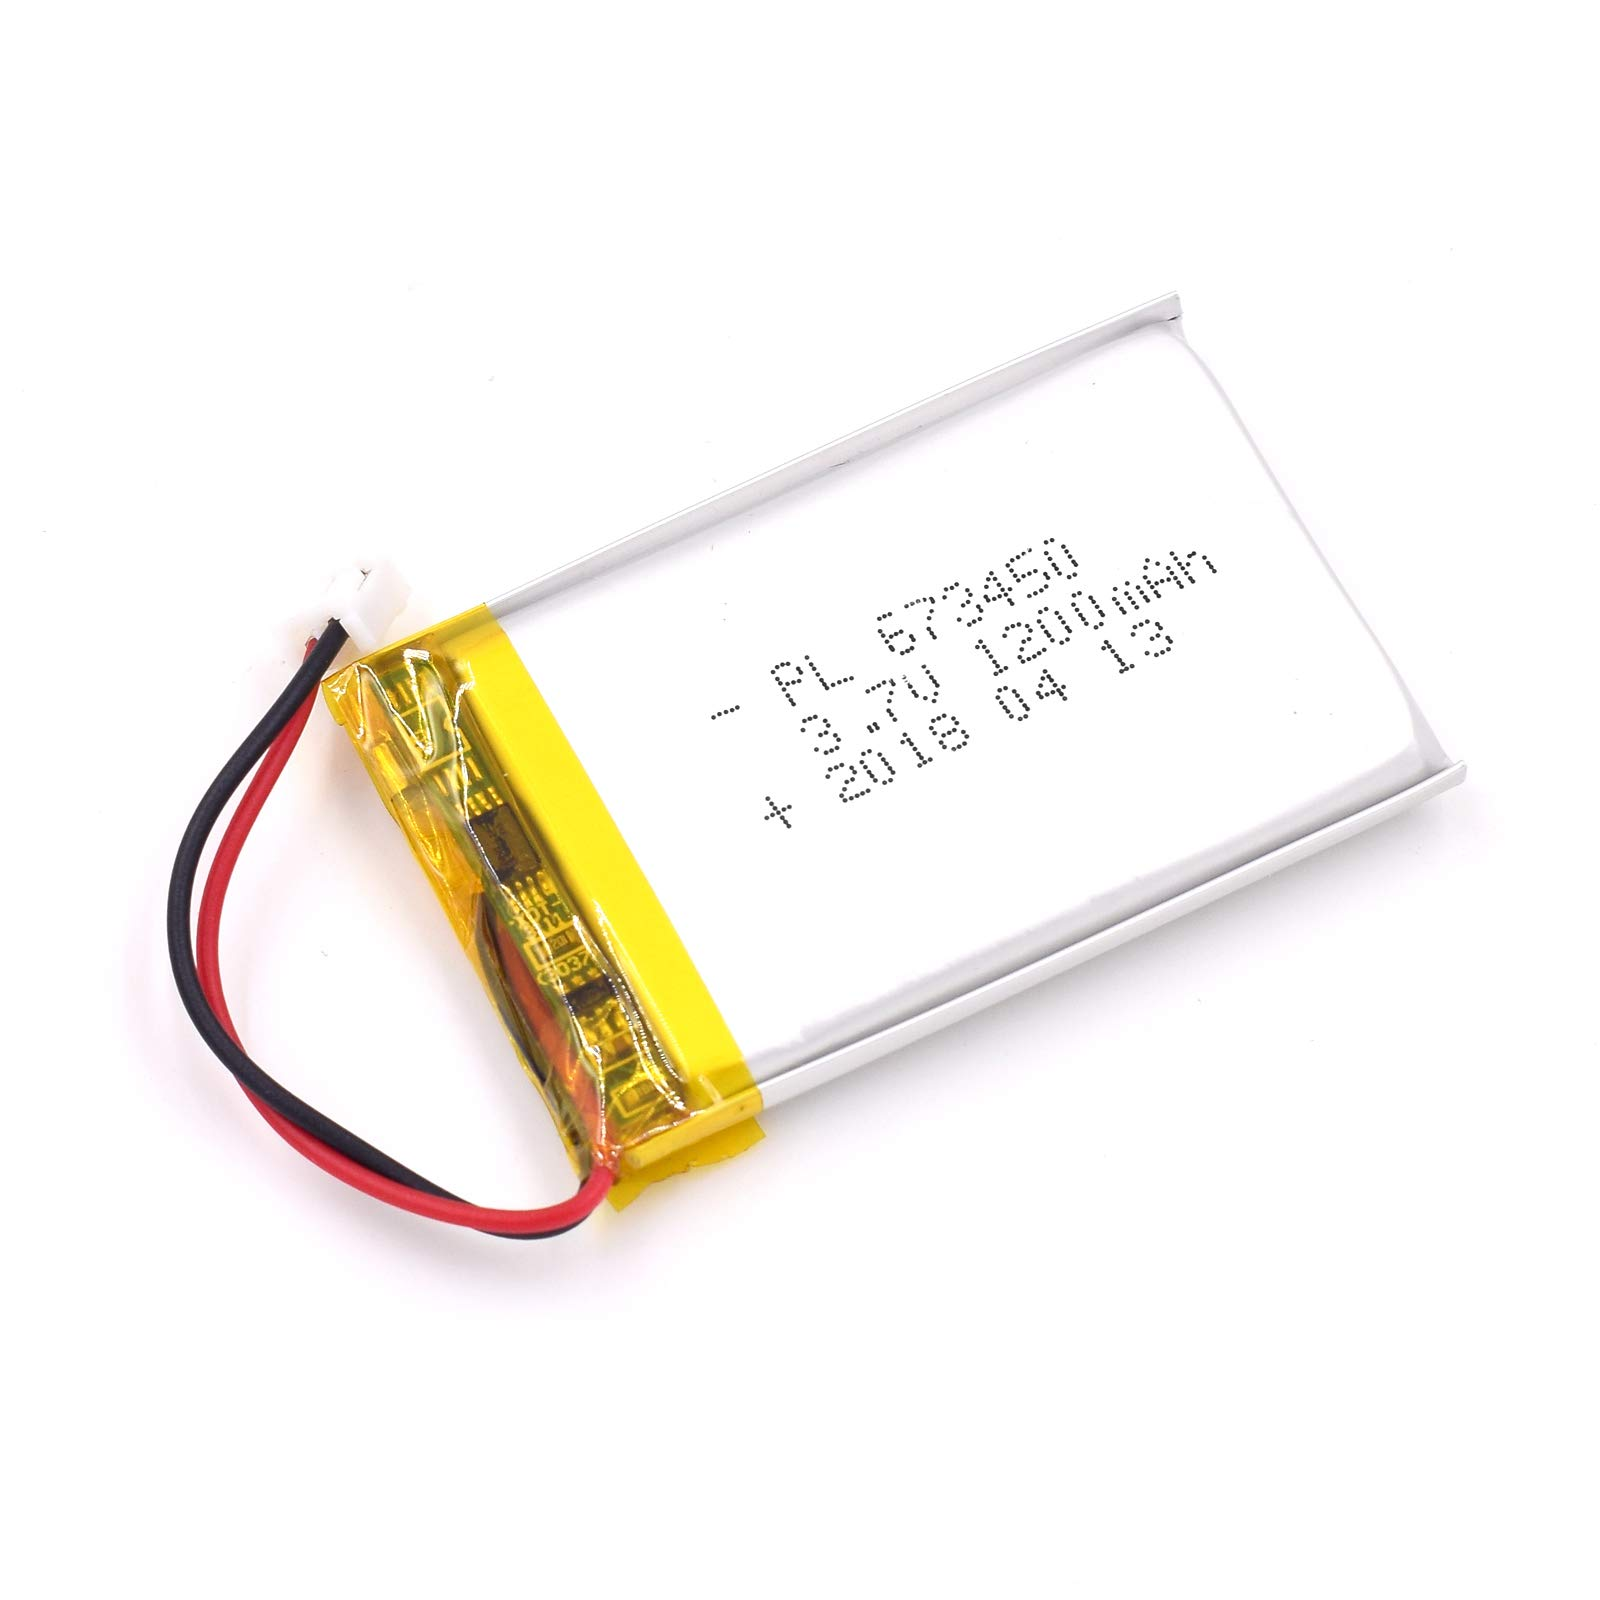 AKZYTUE 3.7V 1200mAh 783448 Lipo Battery Rechargeable Lithium Polymer ion Battery Pack with JST Connector